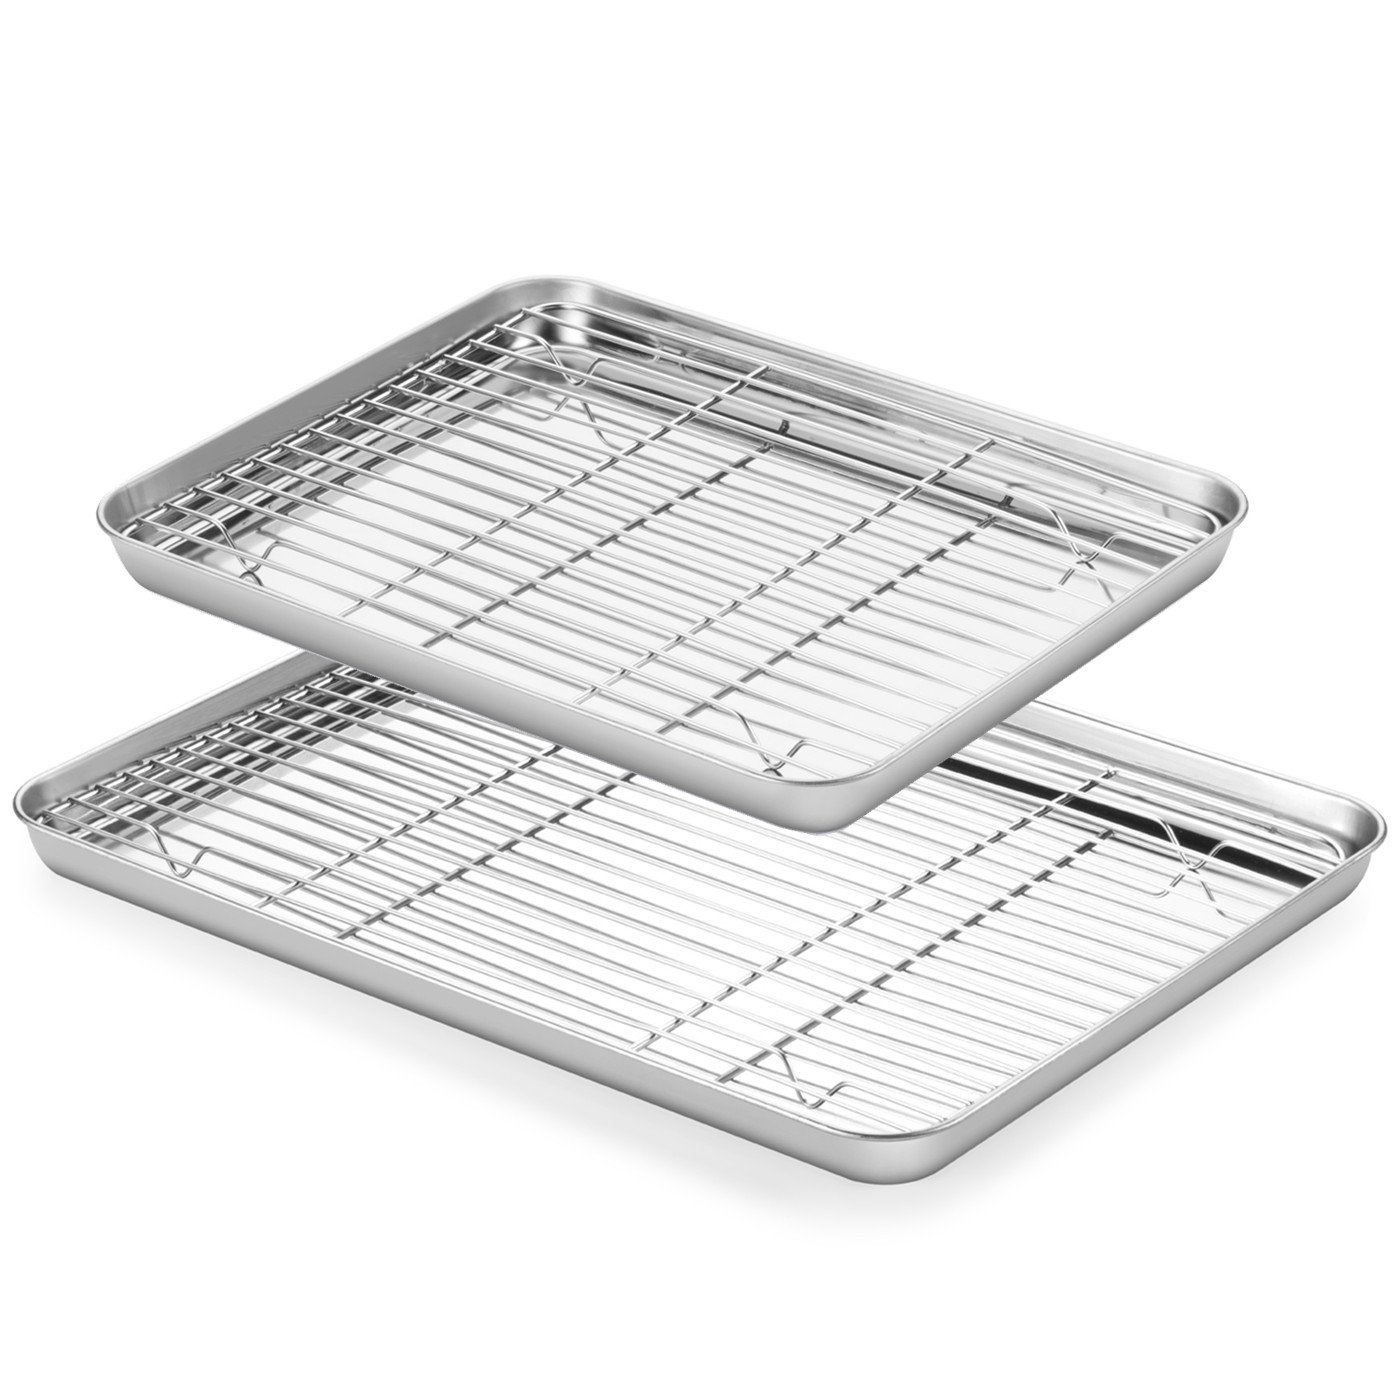 Baking Sheets and Rack Set, ASEL 2 Sets Stainless Steel Baking Pans Tray Cookie Sheet with Cooling Rack, Non Toxic & Healthy, Mirror Finish & Rust Free, Easy Clean & Dishwasher Safe